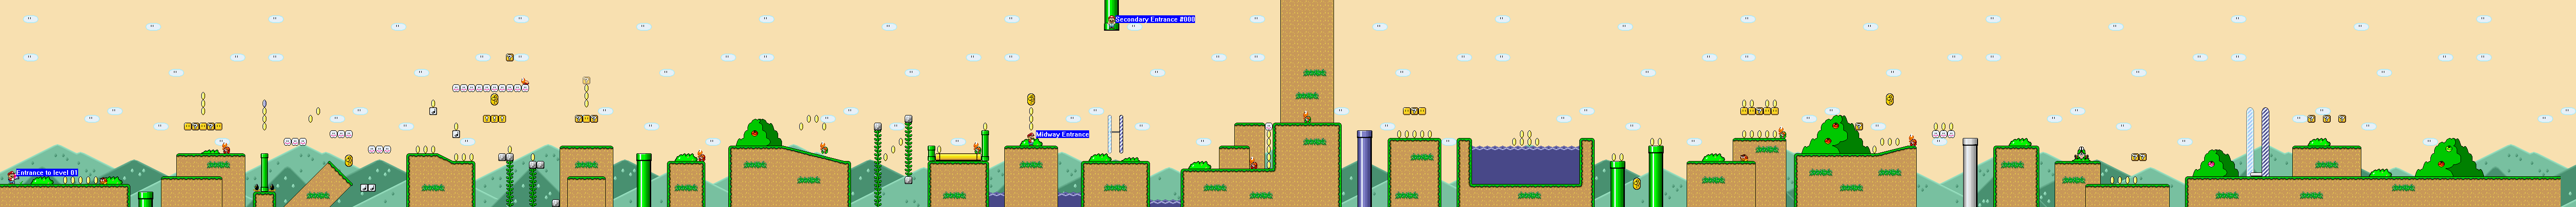 Super Mario: The ultimate adventure (WIP) Level001